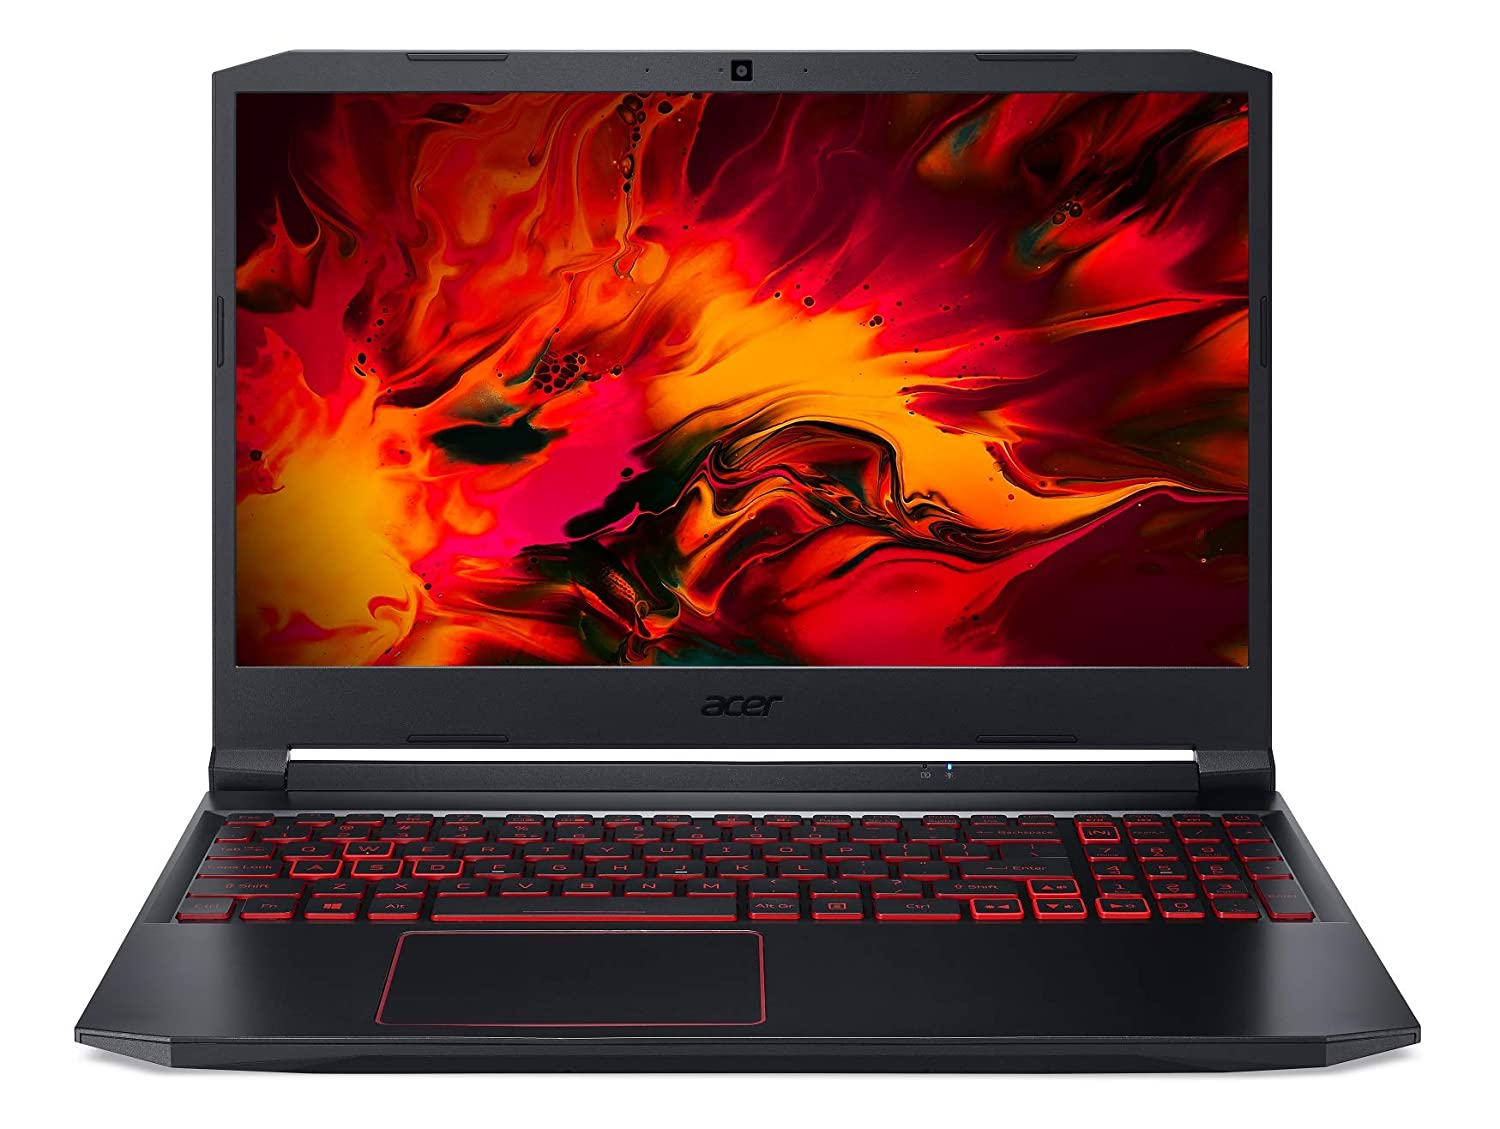 Acer Nitro 5 Intel Core i5-10th Gen 15.6-inch Display 1920 x 1080 Thin and Light Gaming Laptop (8GB Ram/1TB HDD + 256GB SSD/Windows 10 Home/GTX 1650Ti Graphics/Obsidian Black/2.3 Kgs), AN515-55